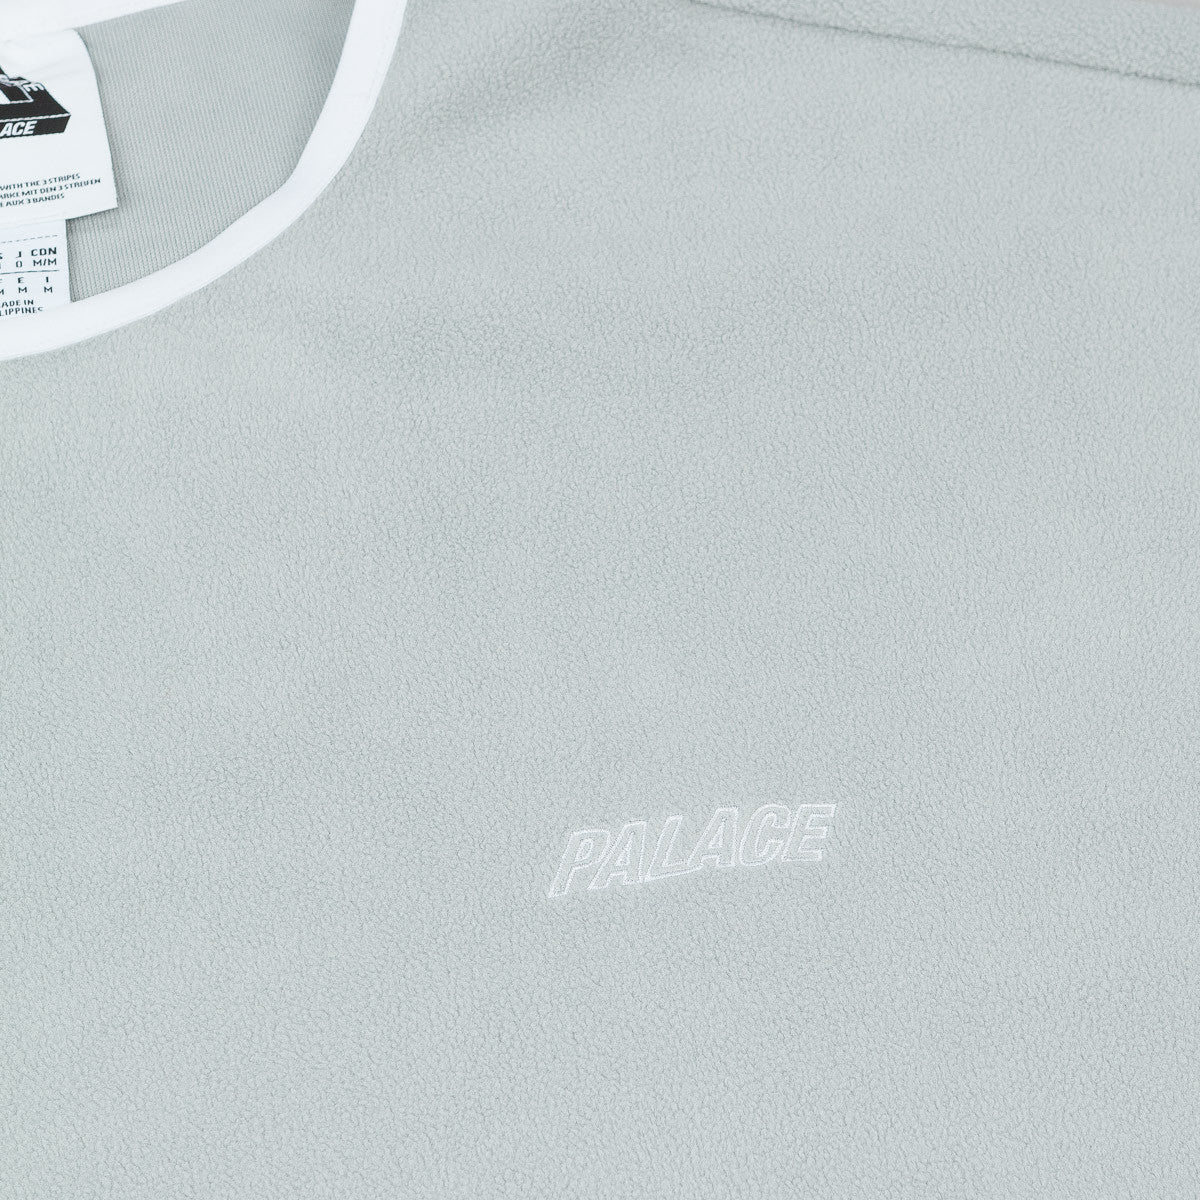 Adidas x Palace Fleece Crew Neck Sweatshirt - Grey